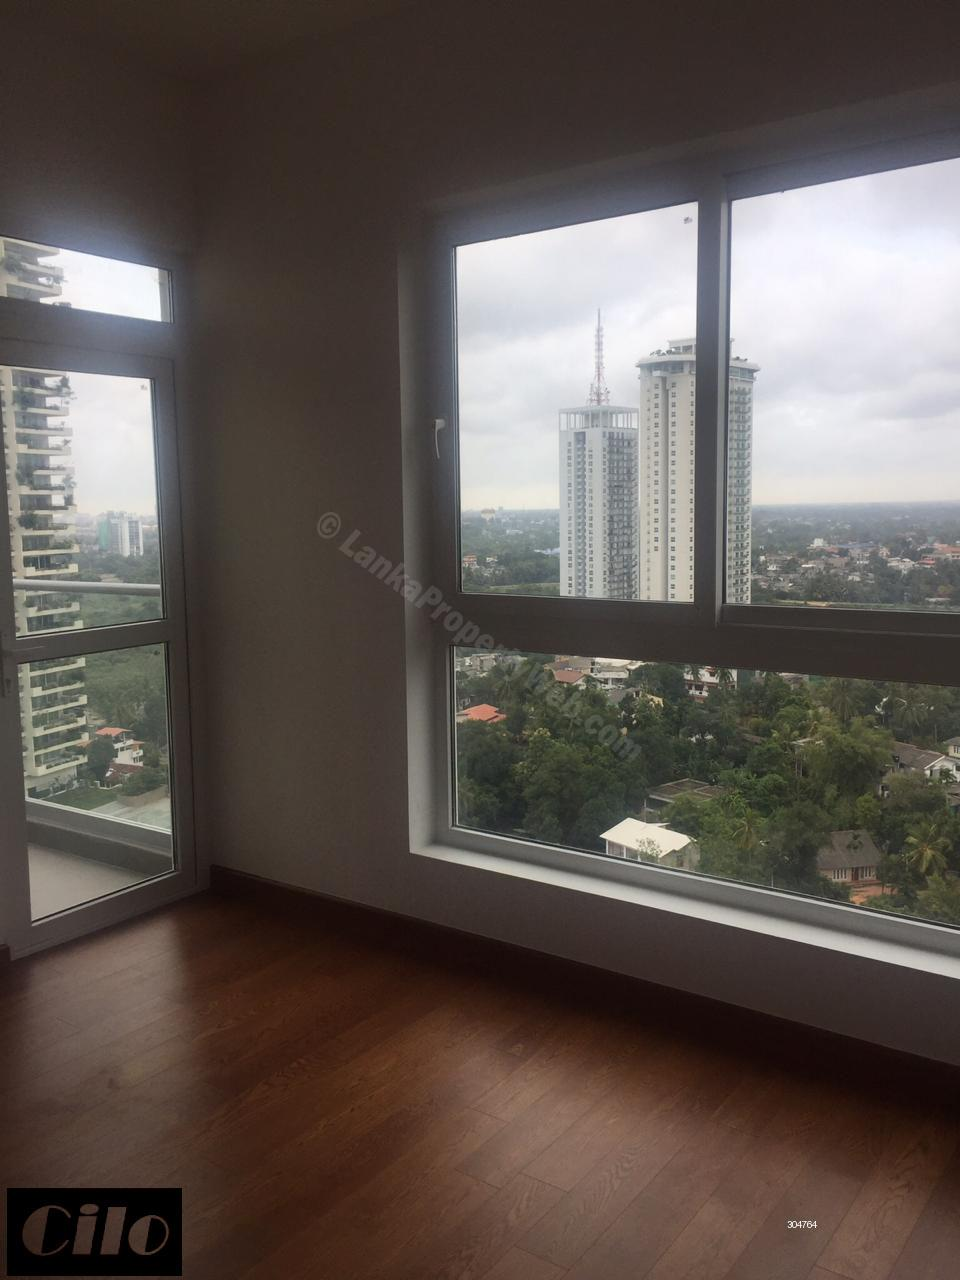 Apartment for sale in Rajagiriya - 3 bedroom unfurnished brand new higher floor apartment in Rajagiriya Elements for sale